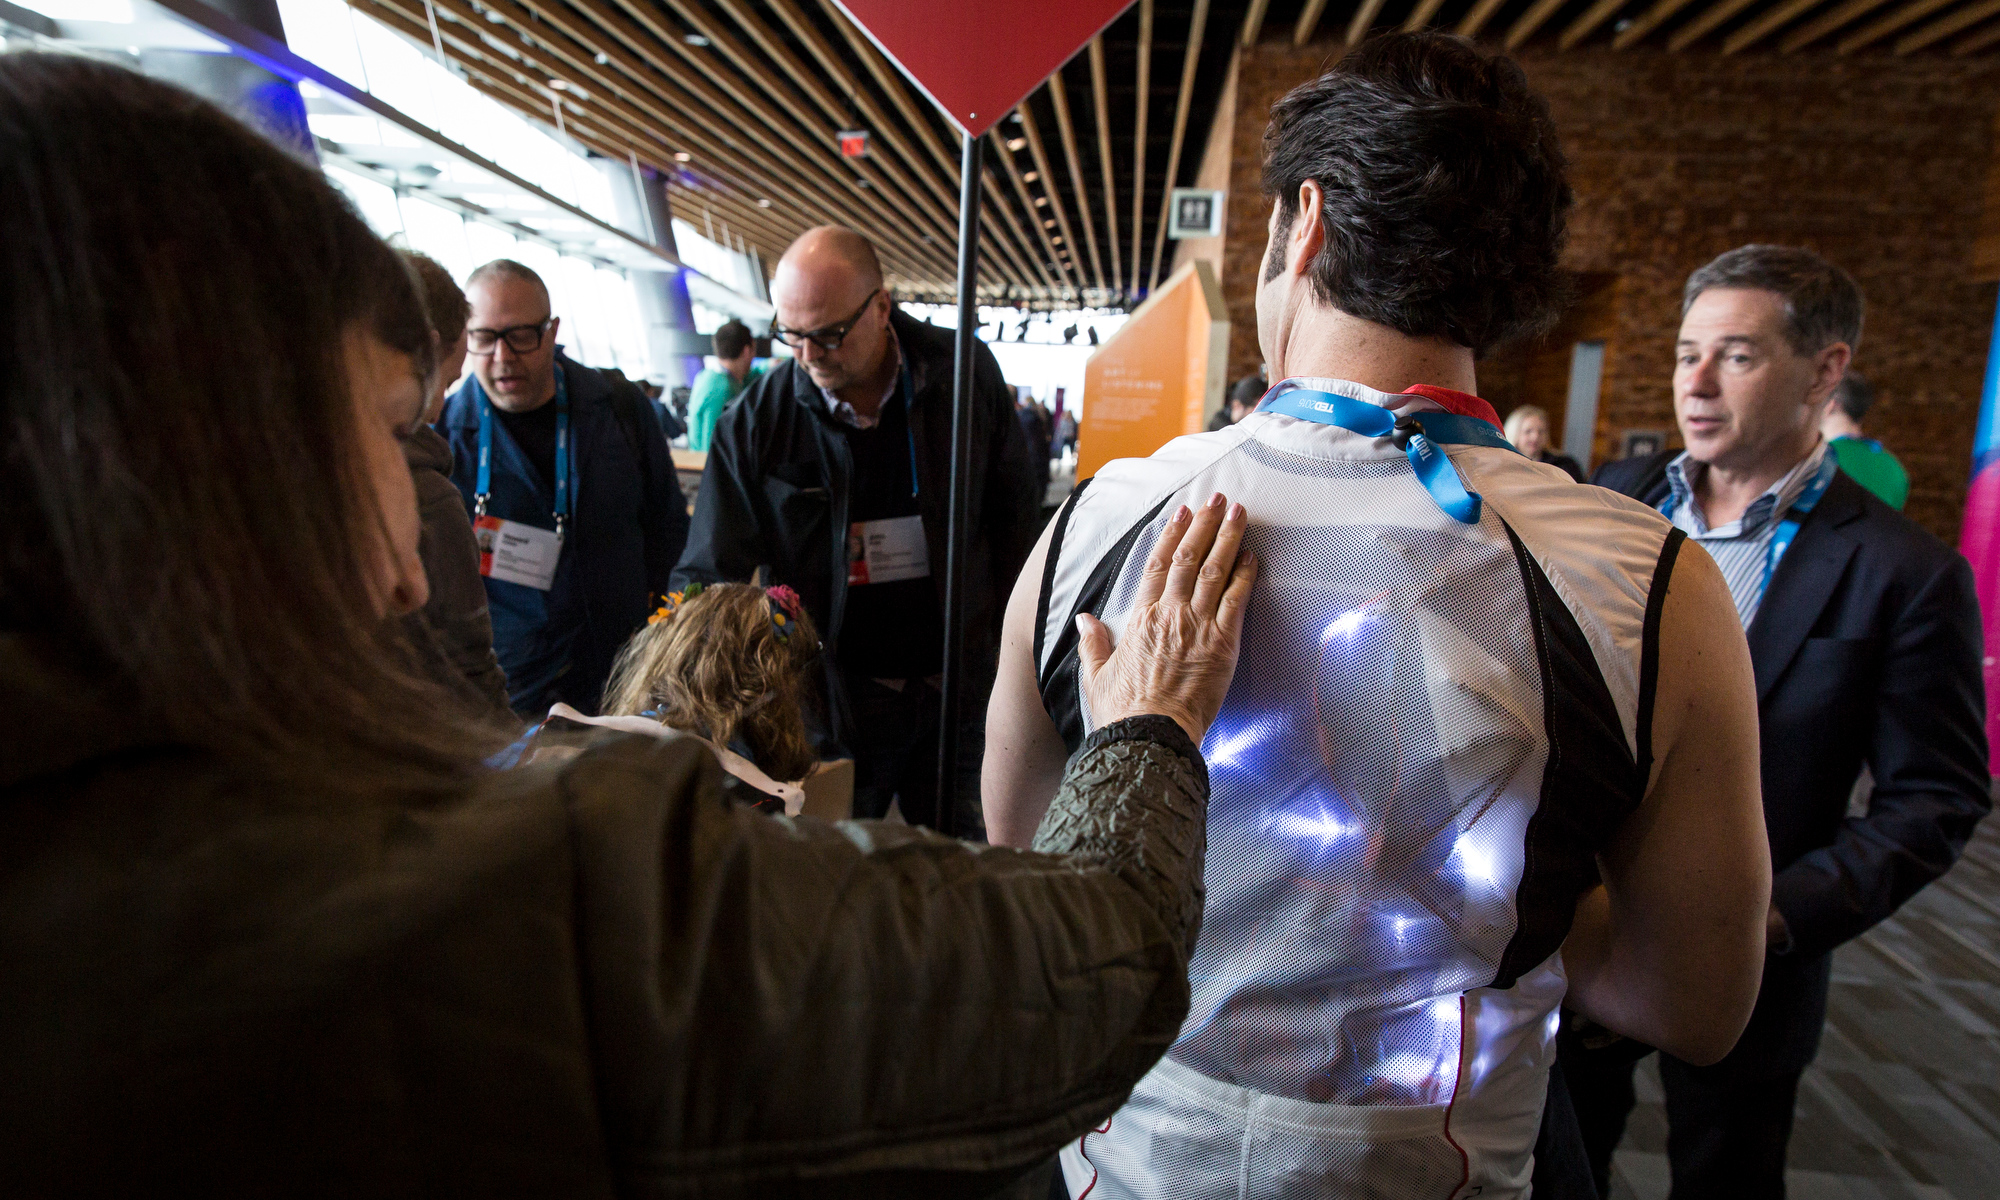 Attendees get a hands-on look at David Eagleman's vest at TED2015 - Truth and Dare, Session 2, March 16-20, 2015, Vancouver Convention Center, Vancouver, Canada. Photo: James Duncan Davidson/TED